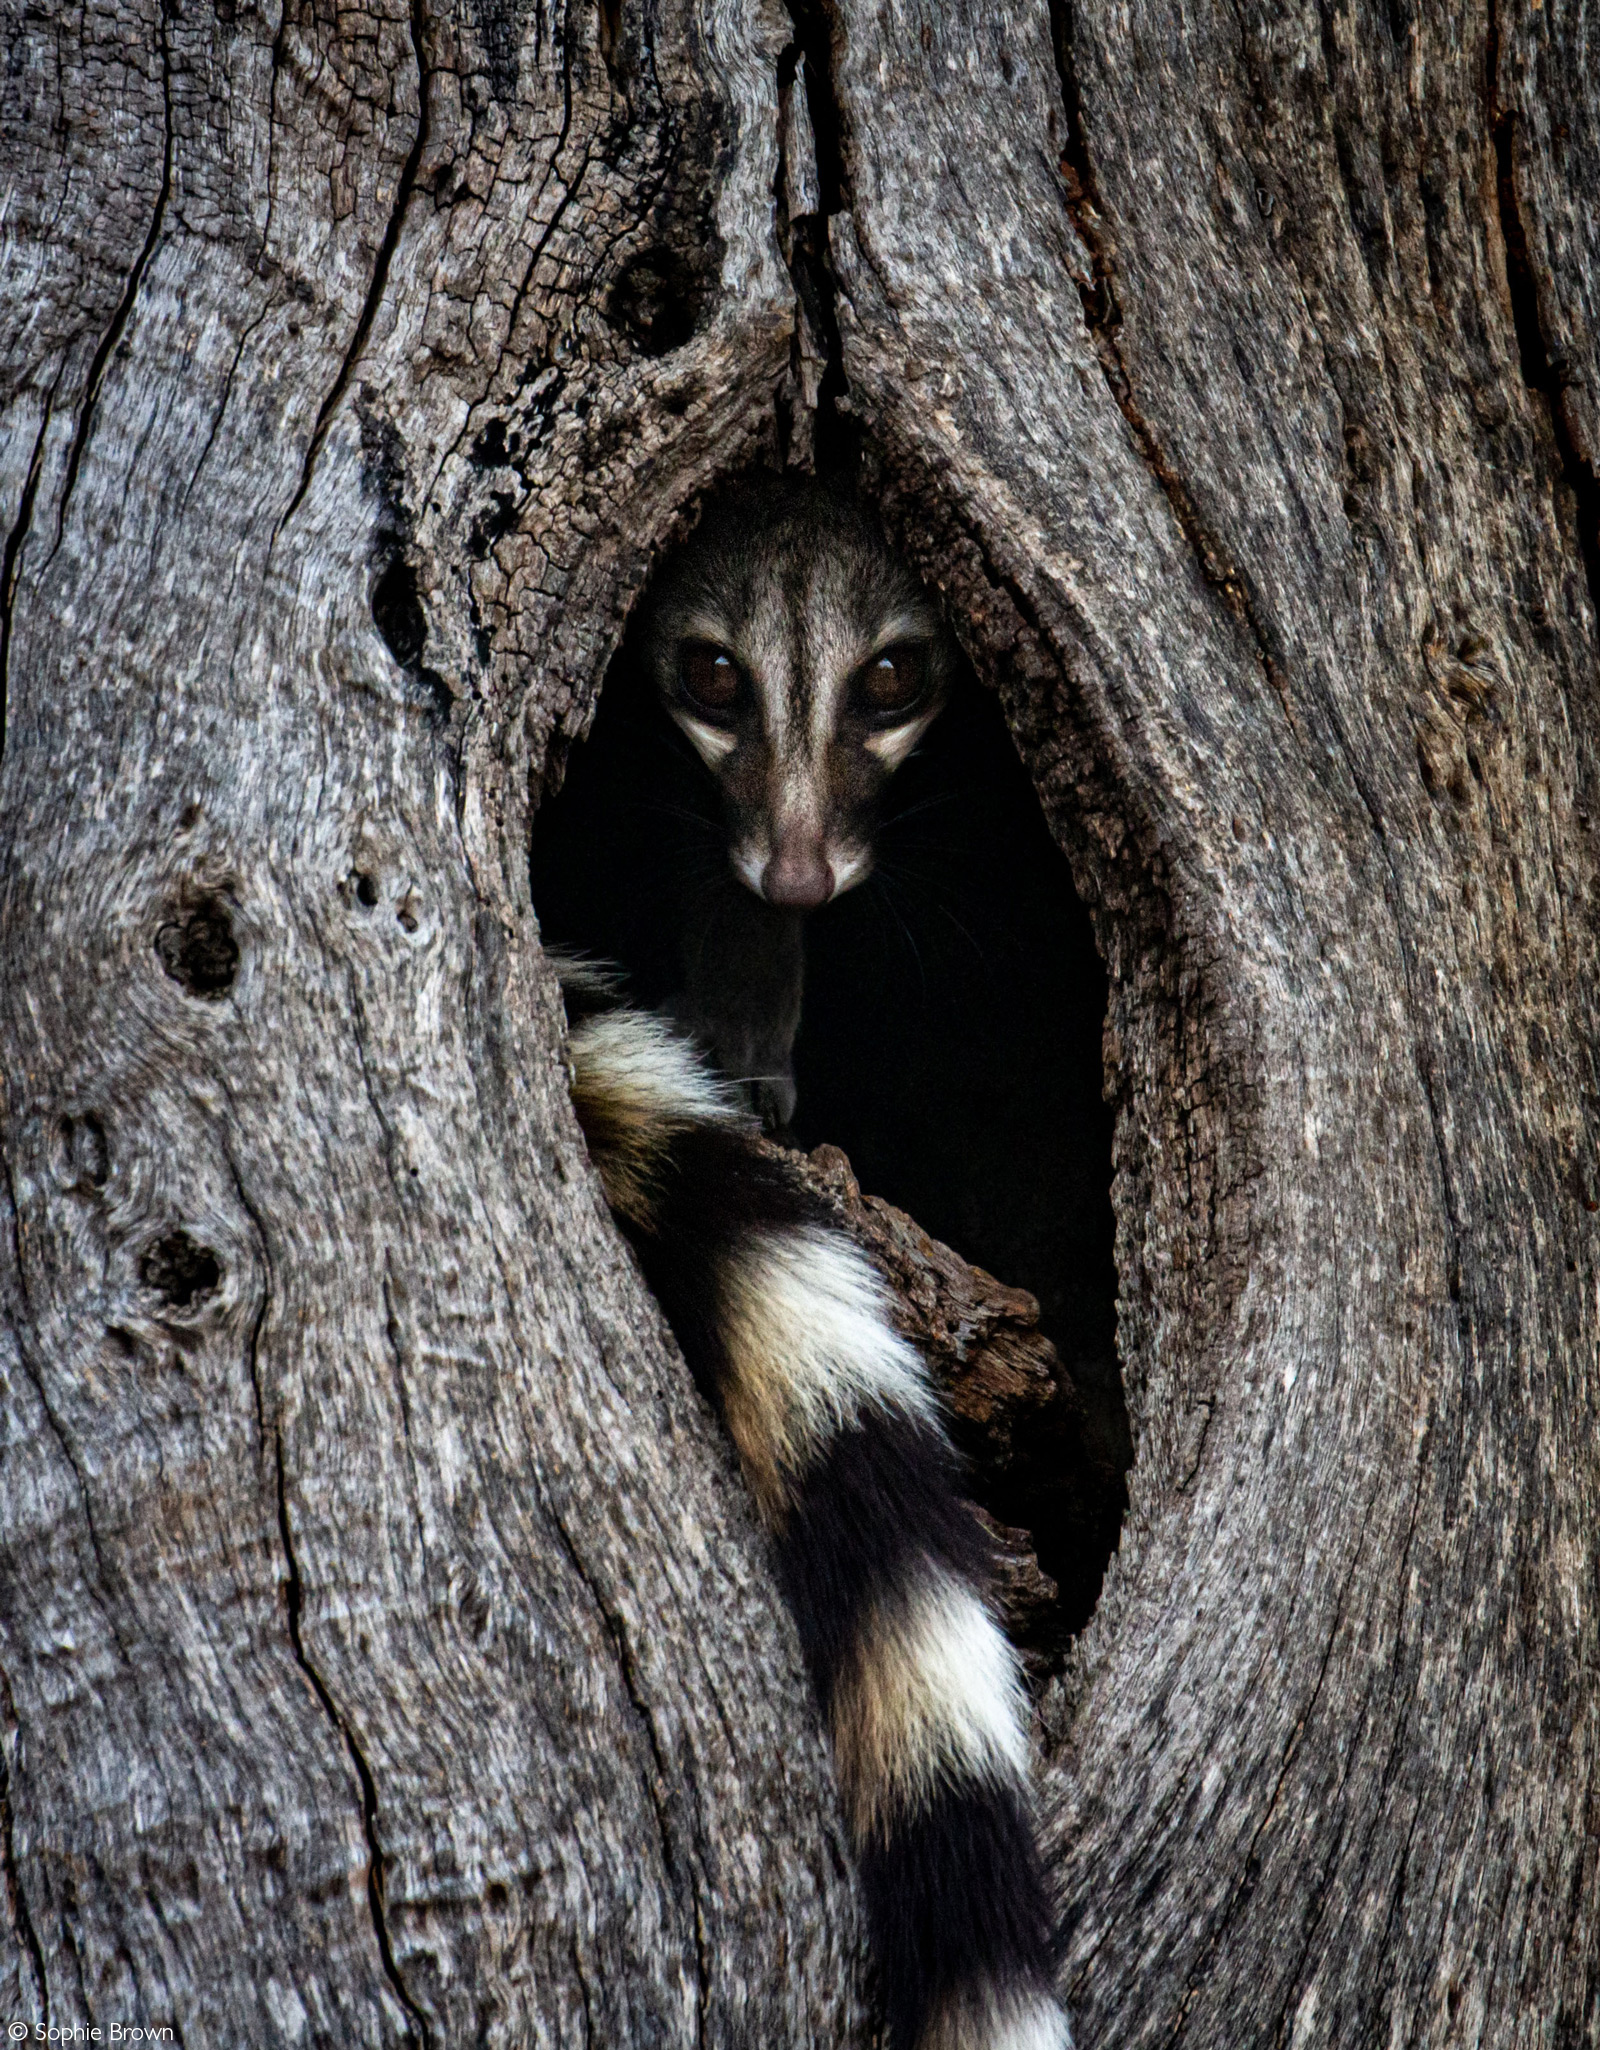 A genet takes a quick look out of a tree it has chosen to sleep in for the day. Klaserie Private Nature Reserve, South Africa © Sophie Brown